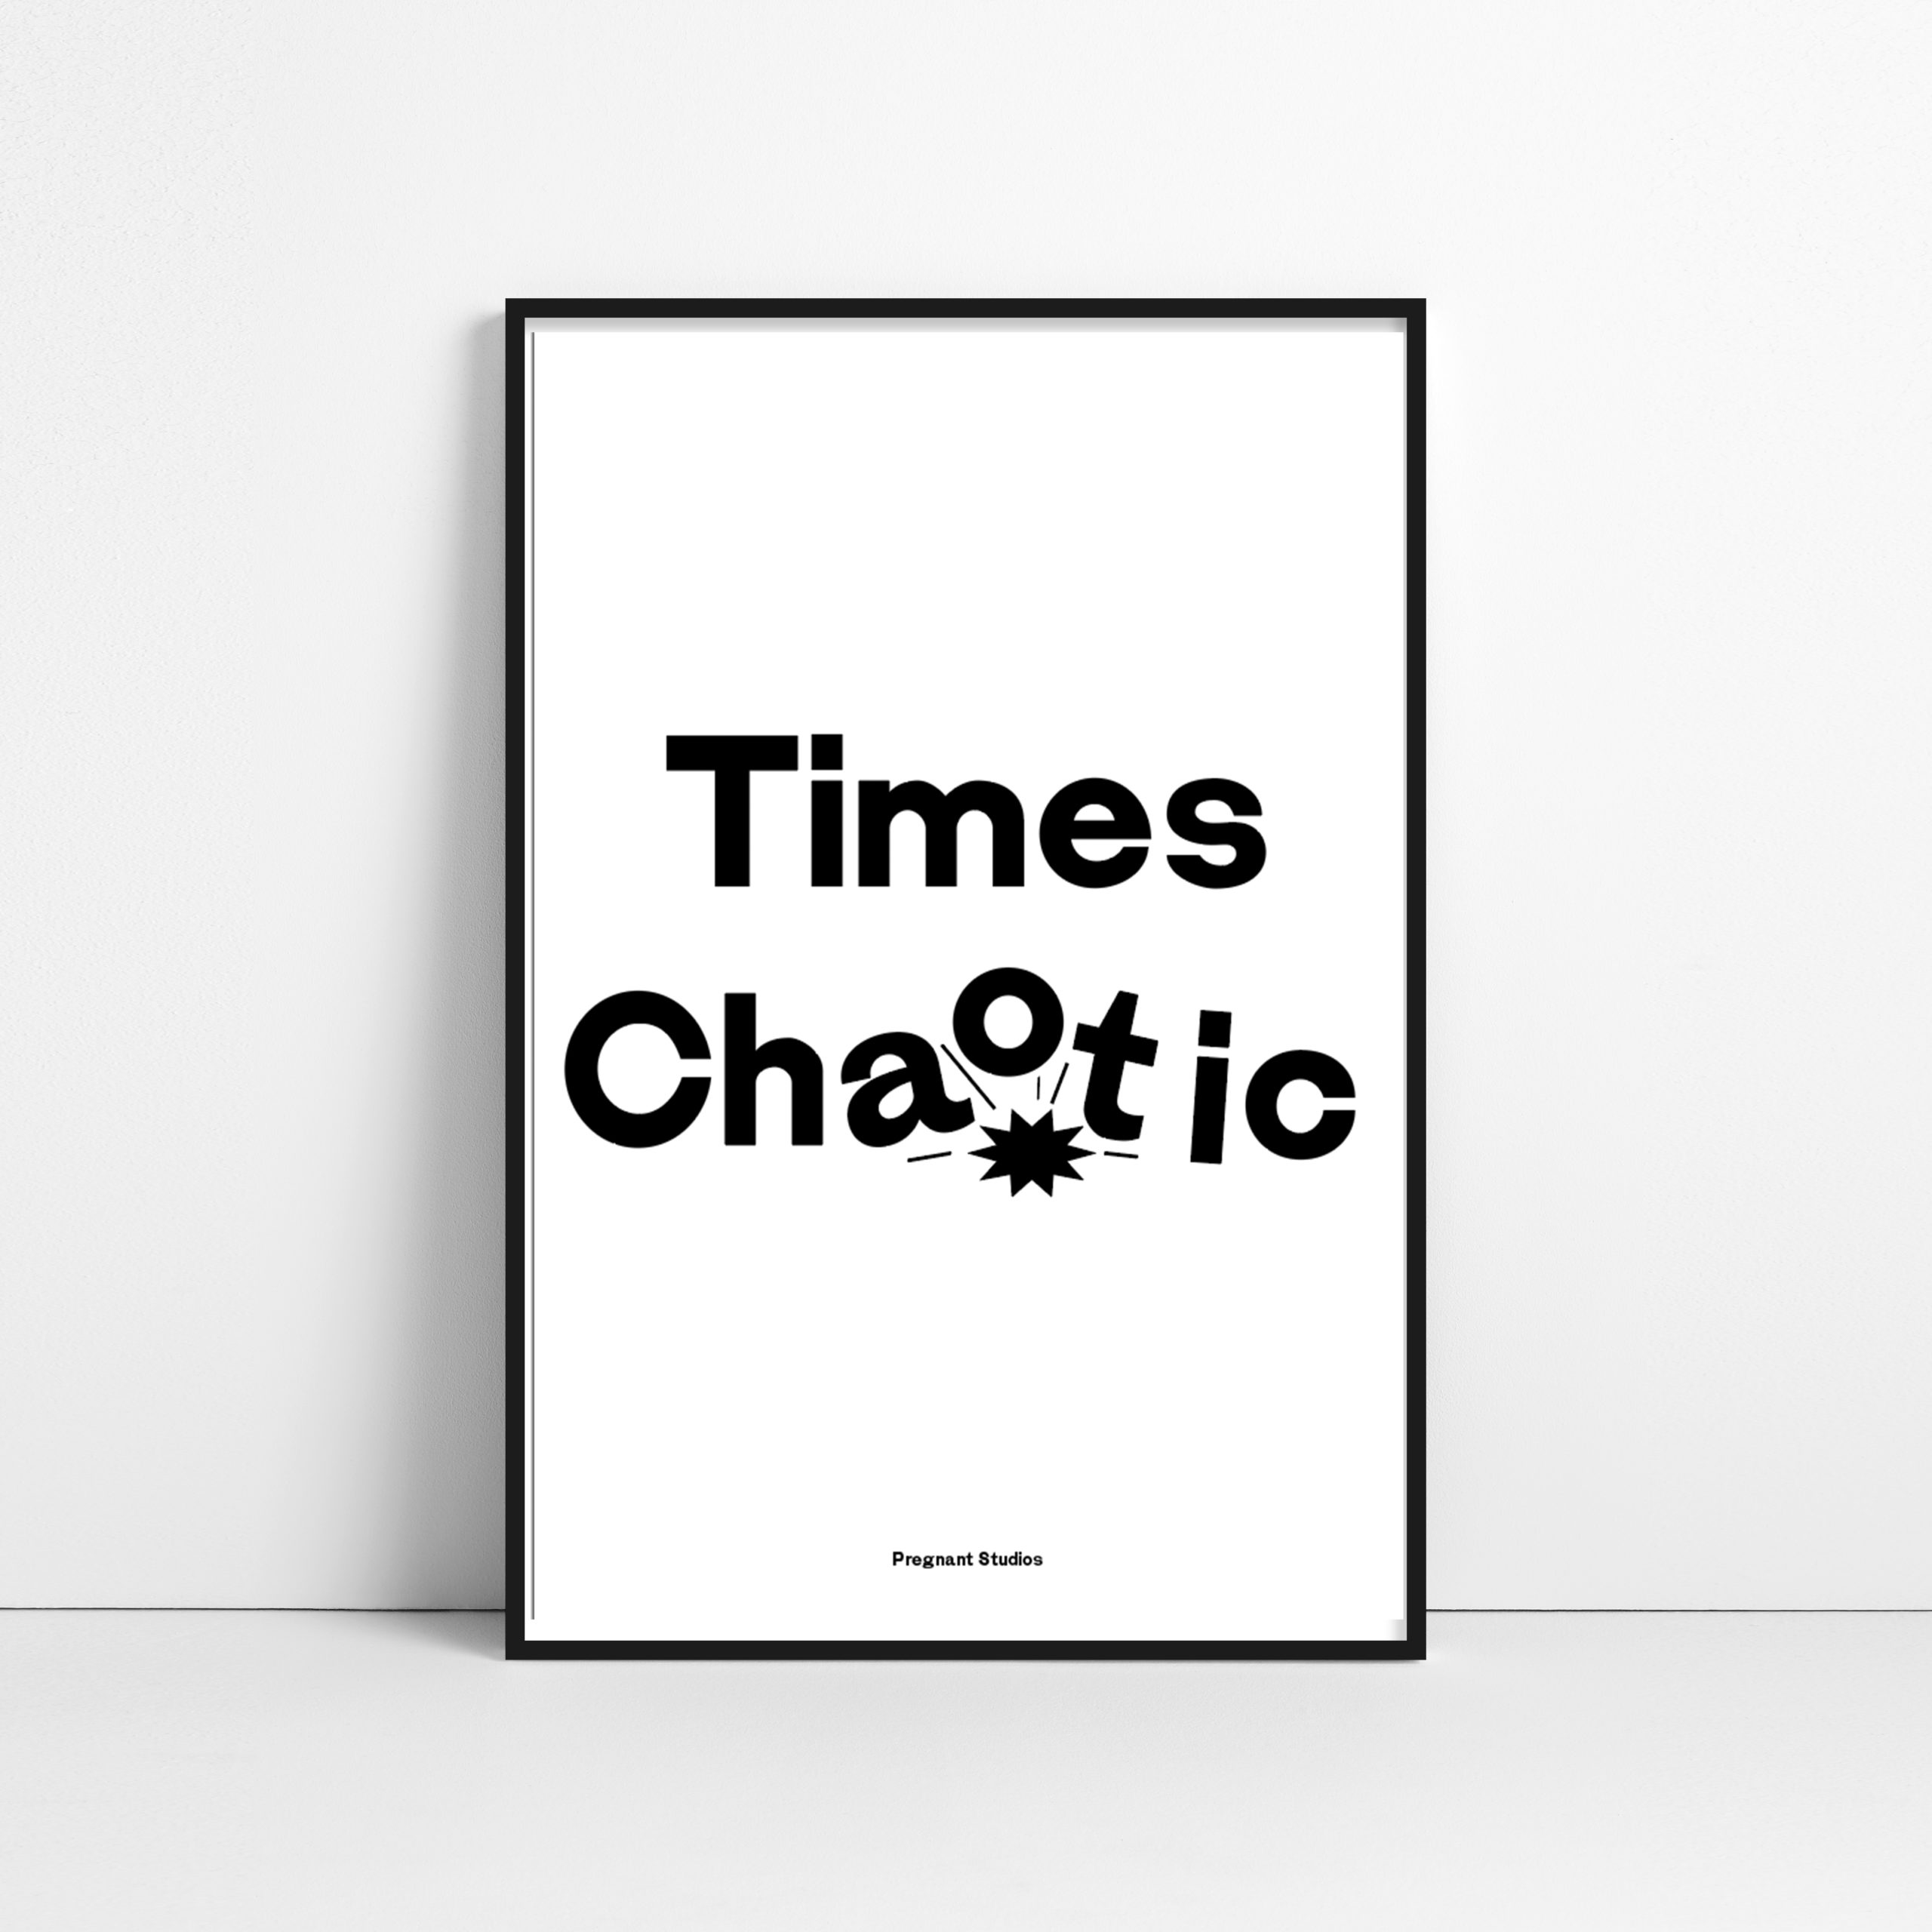 Ewoudt-Boonstra-Times-Chaotic-1